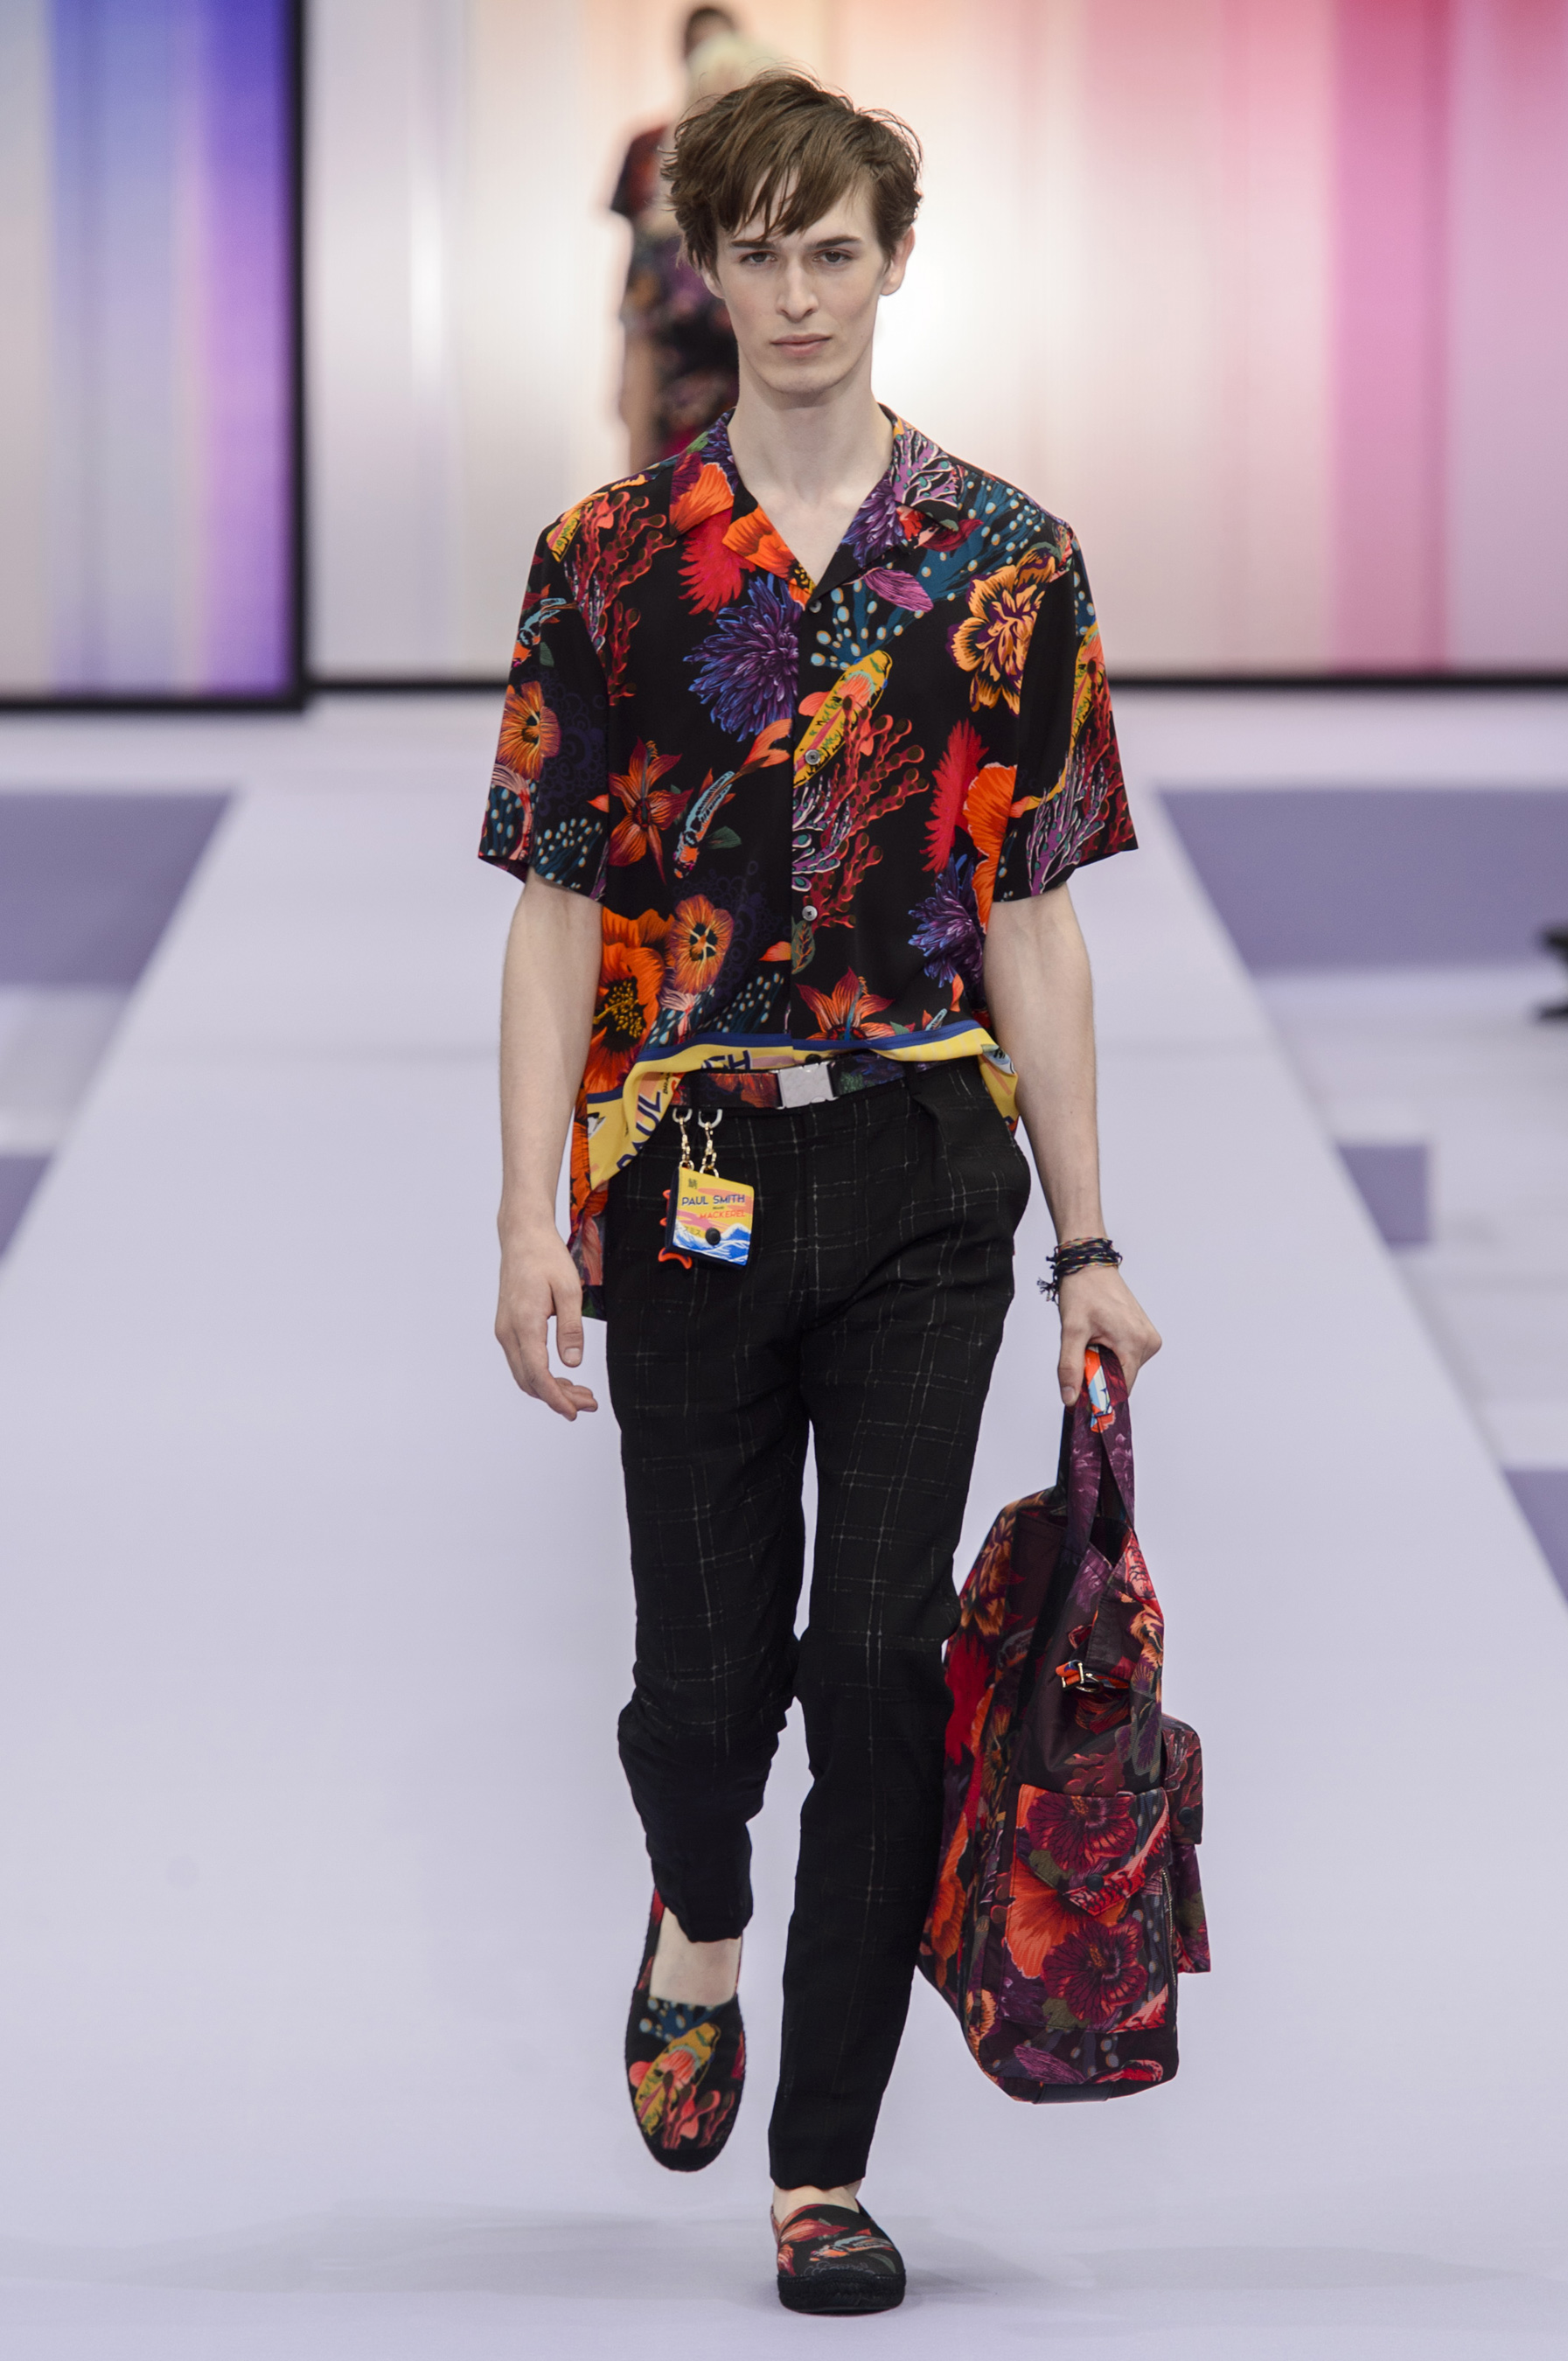 Smith paul mens spring runway advise to wear for on every day in 2019